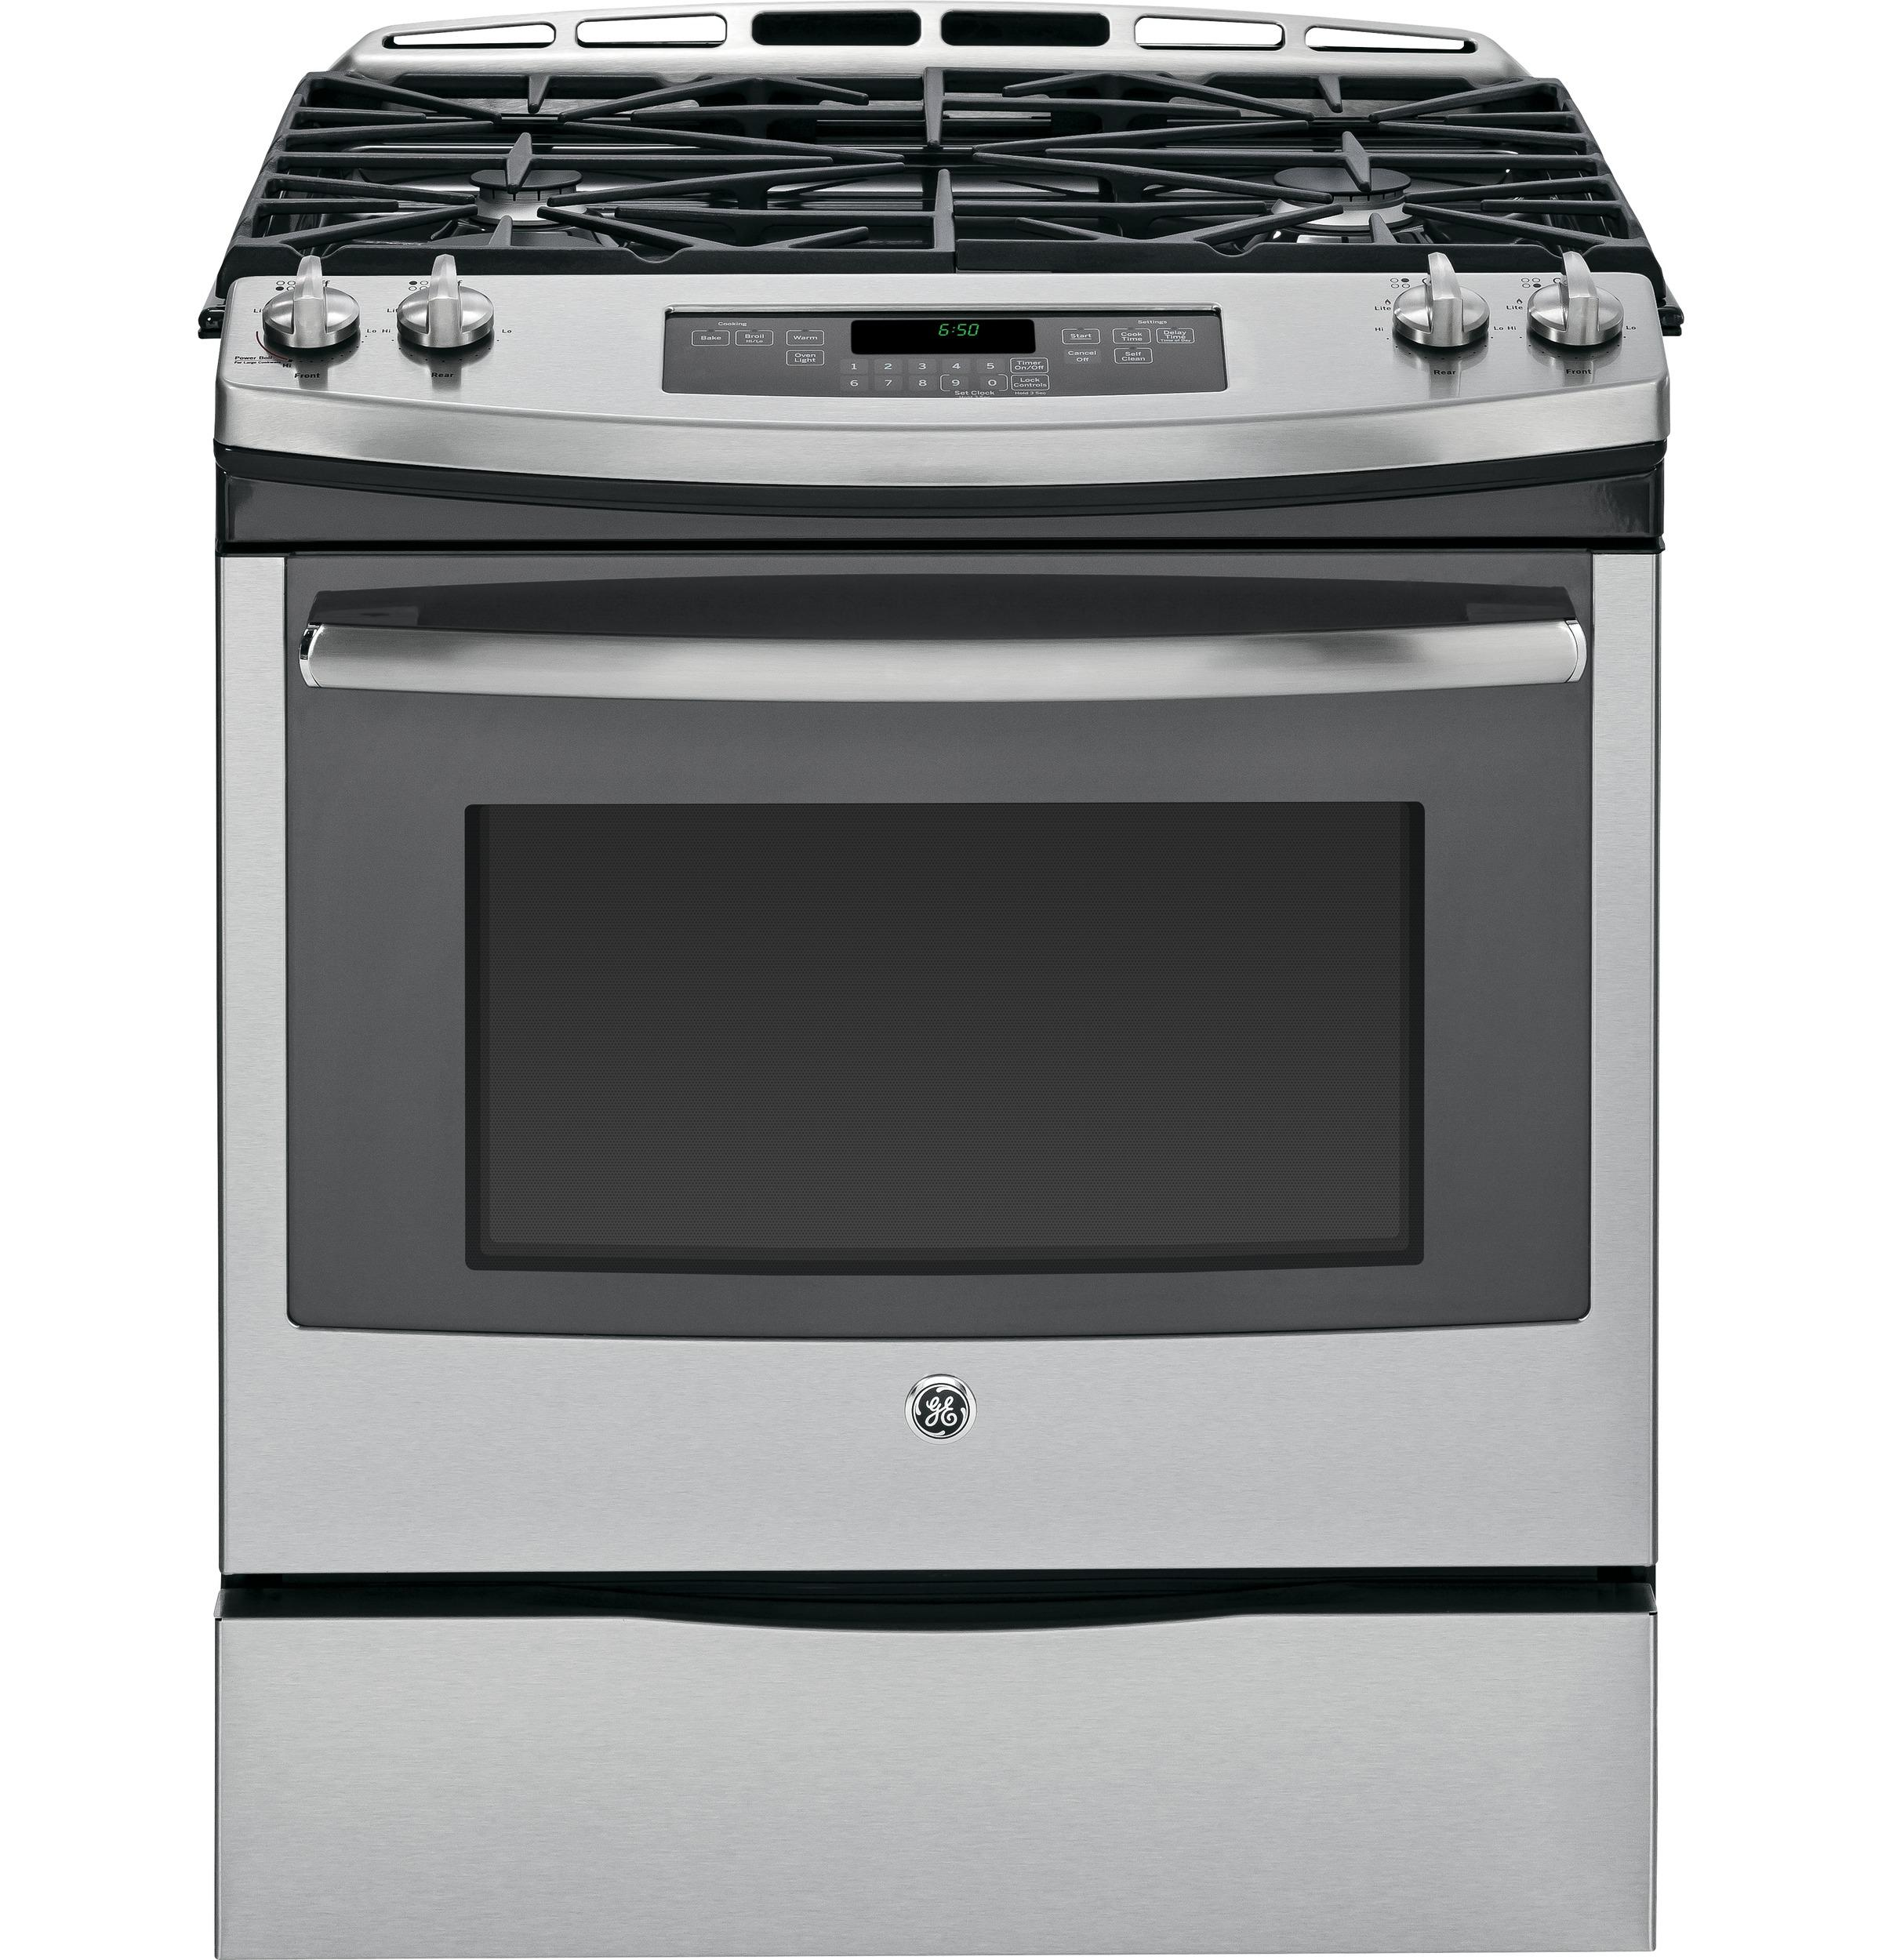 kitchen stove gas gas ranges ranges cooking warehouse center 750